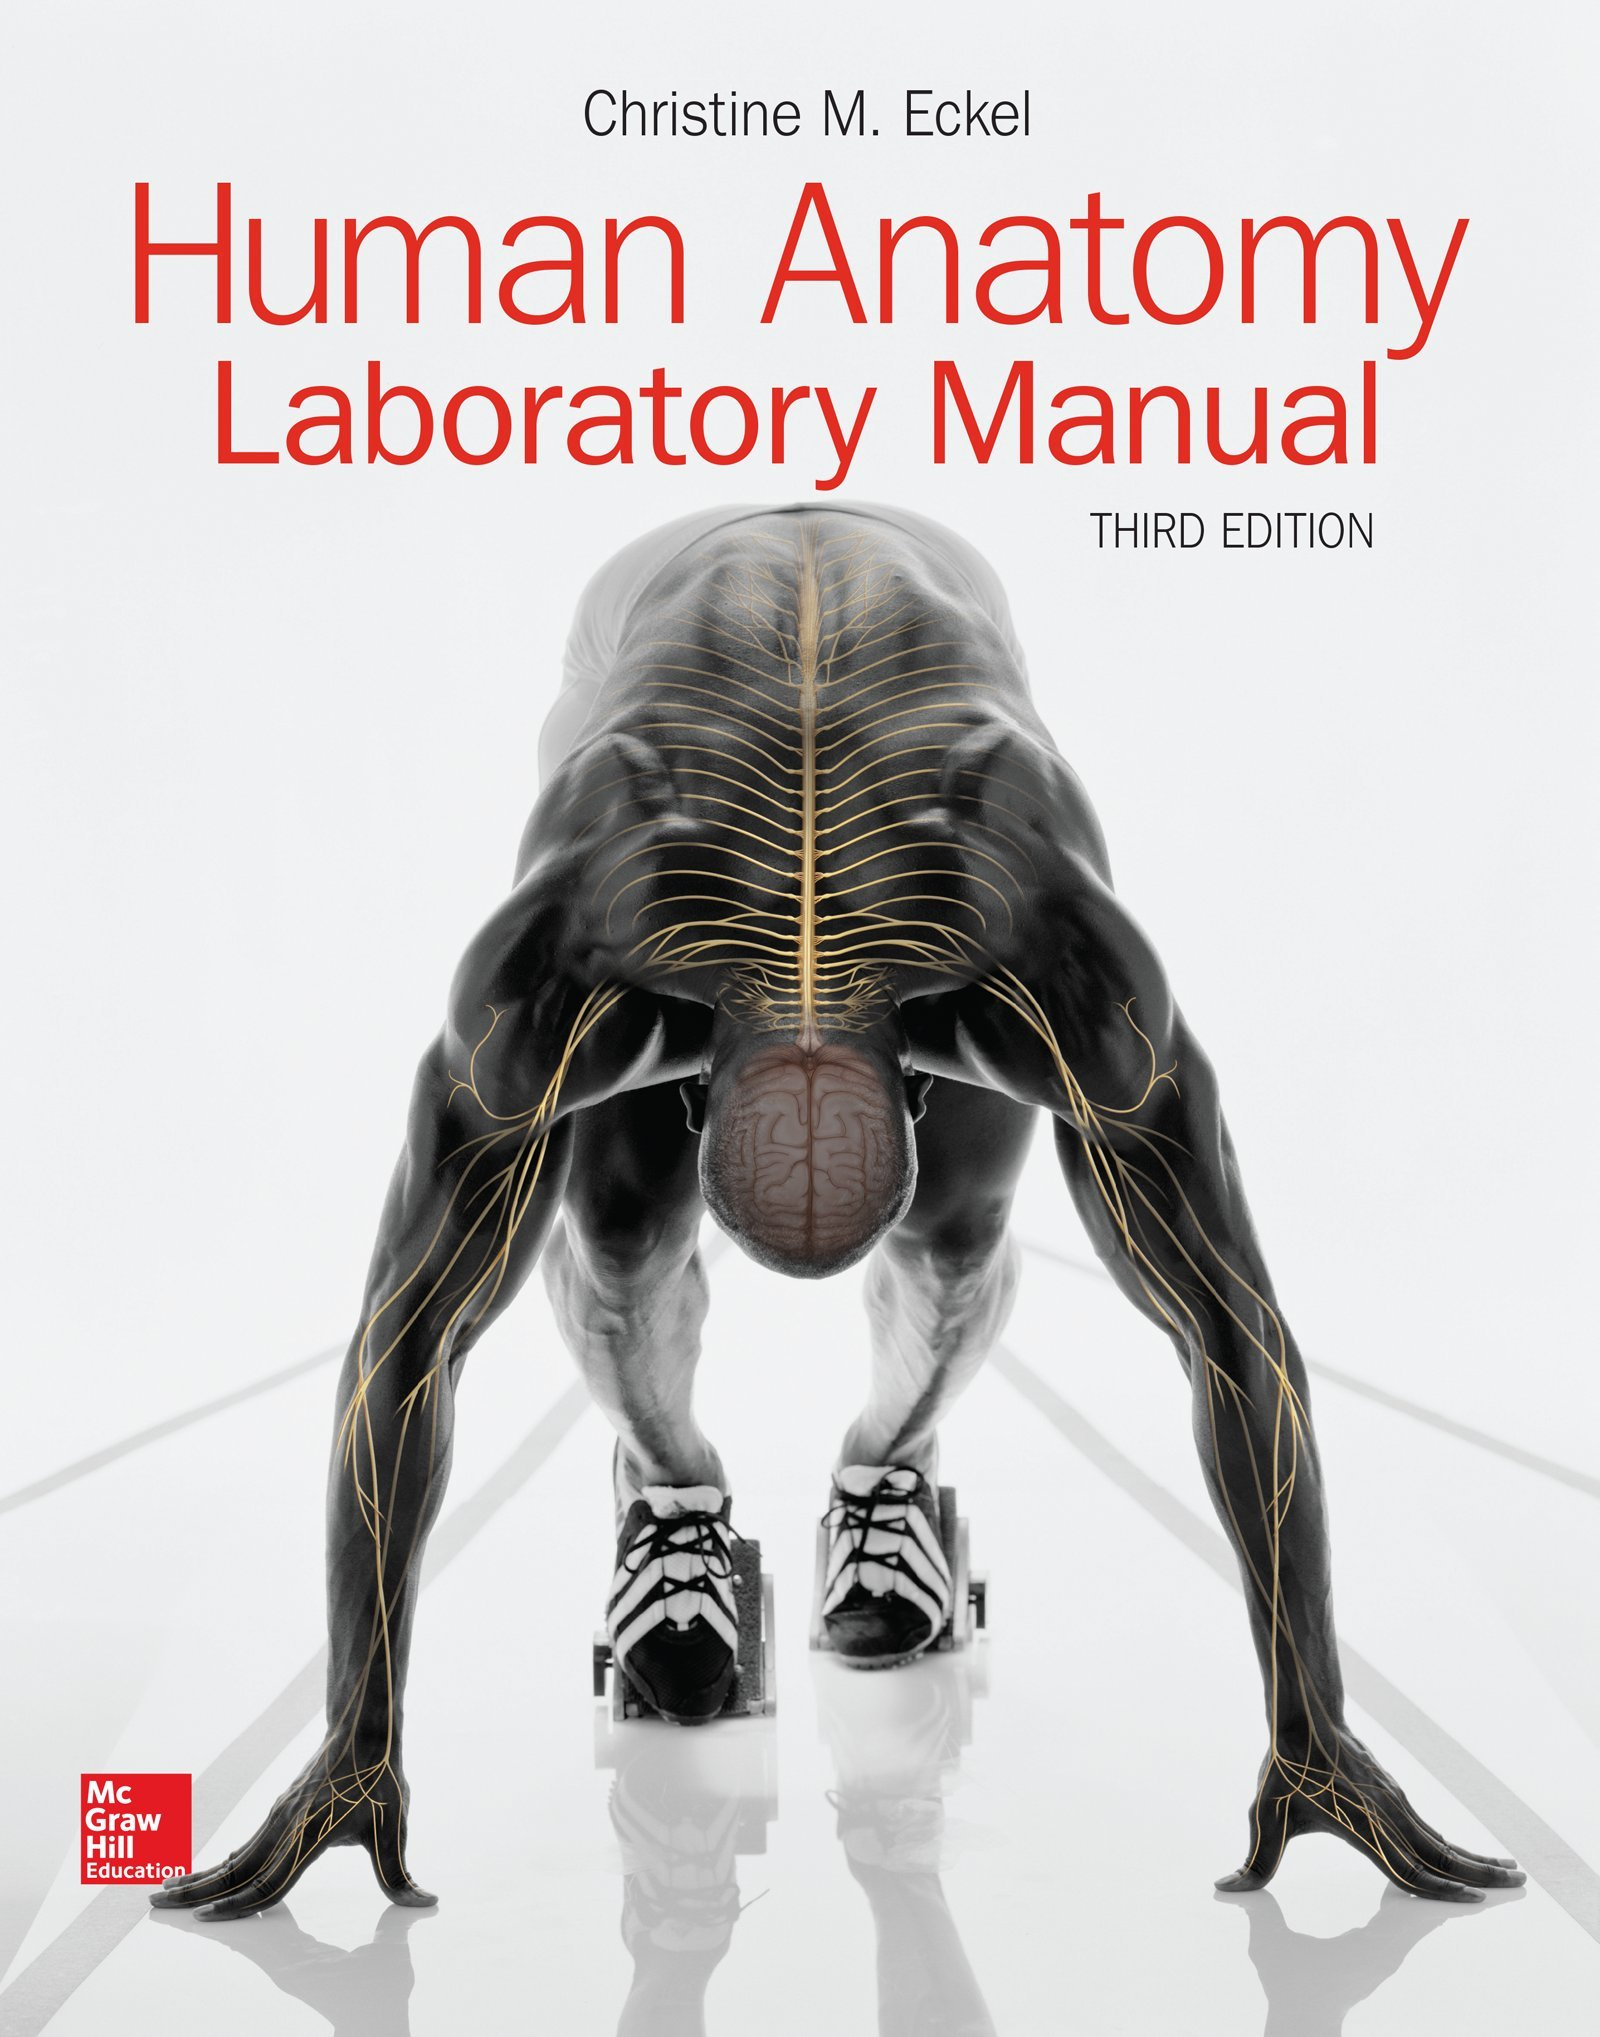 HUMAN ANATOMY LAB MANUAL: Christine M Eckel Biology Instructor:  9781259872686: Anatomy & Physiology: Amazon Canada